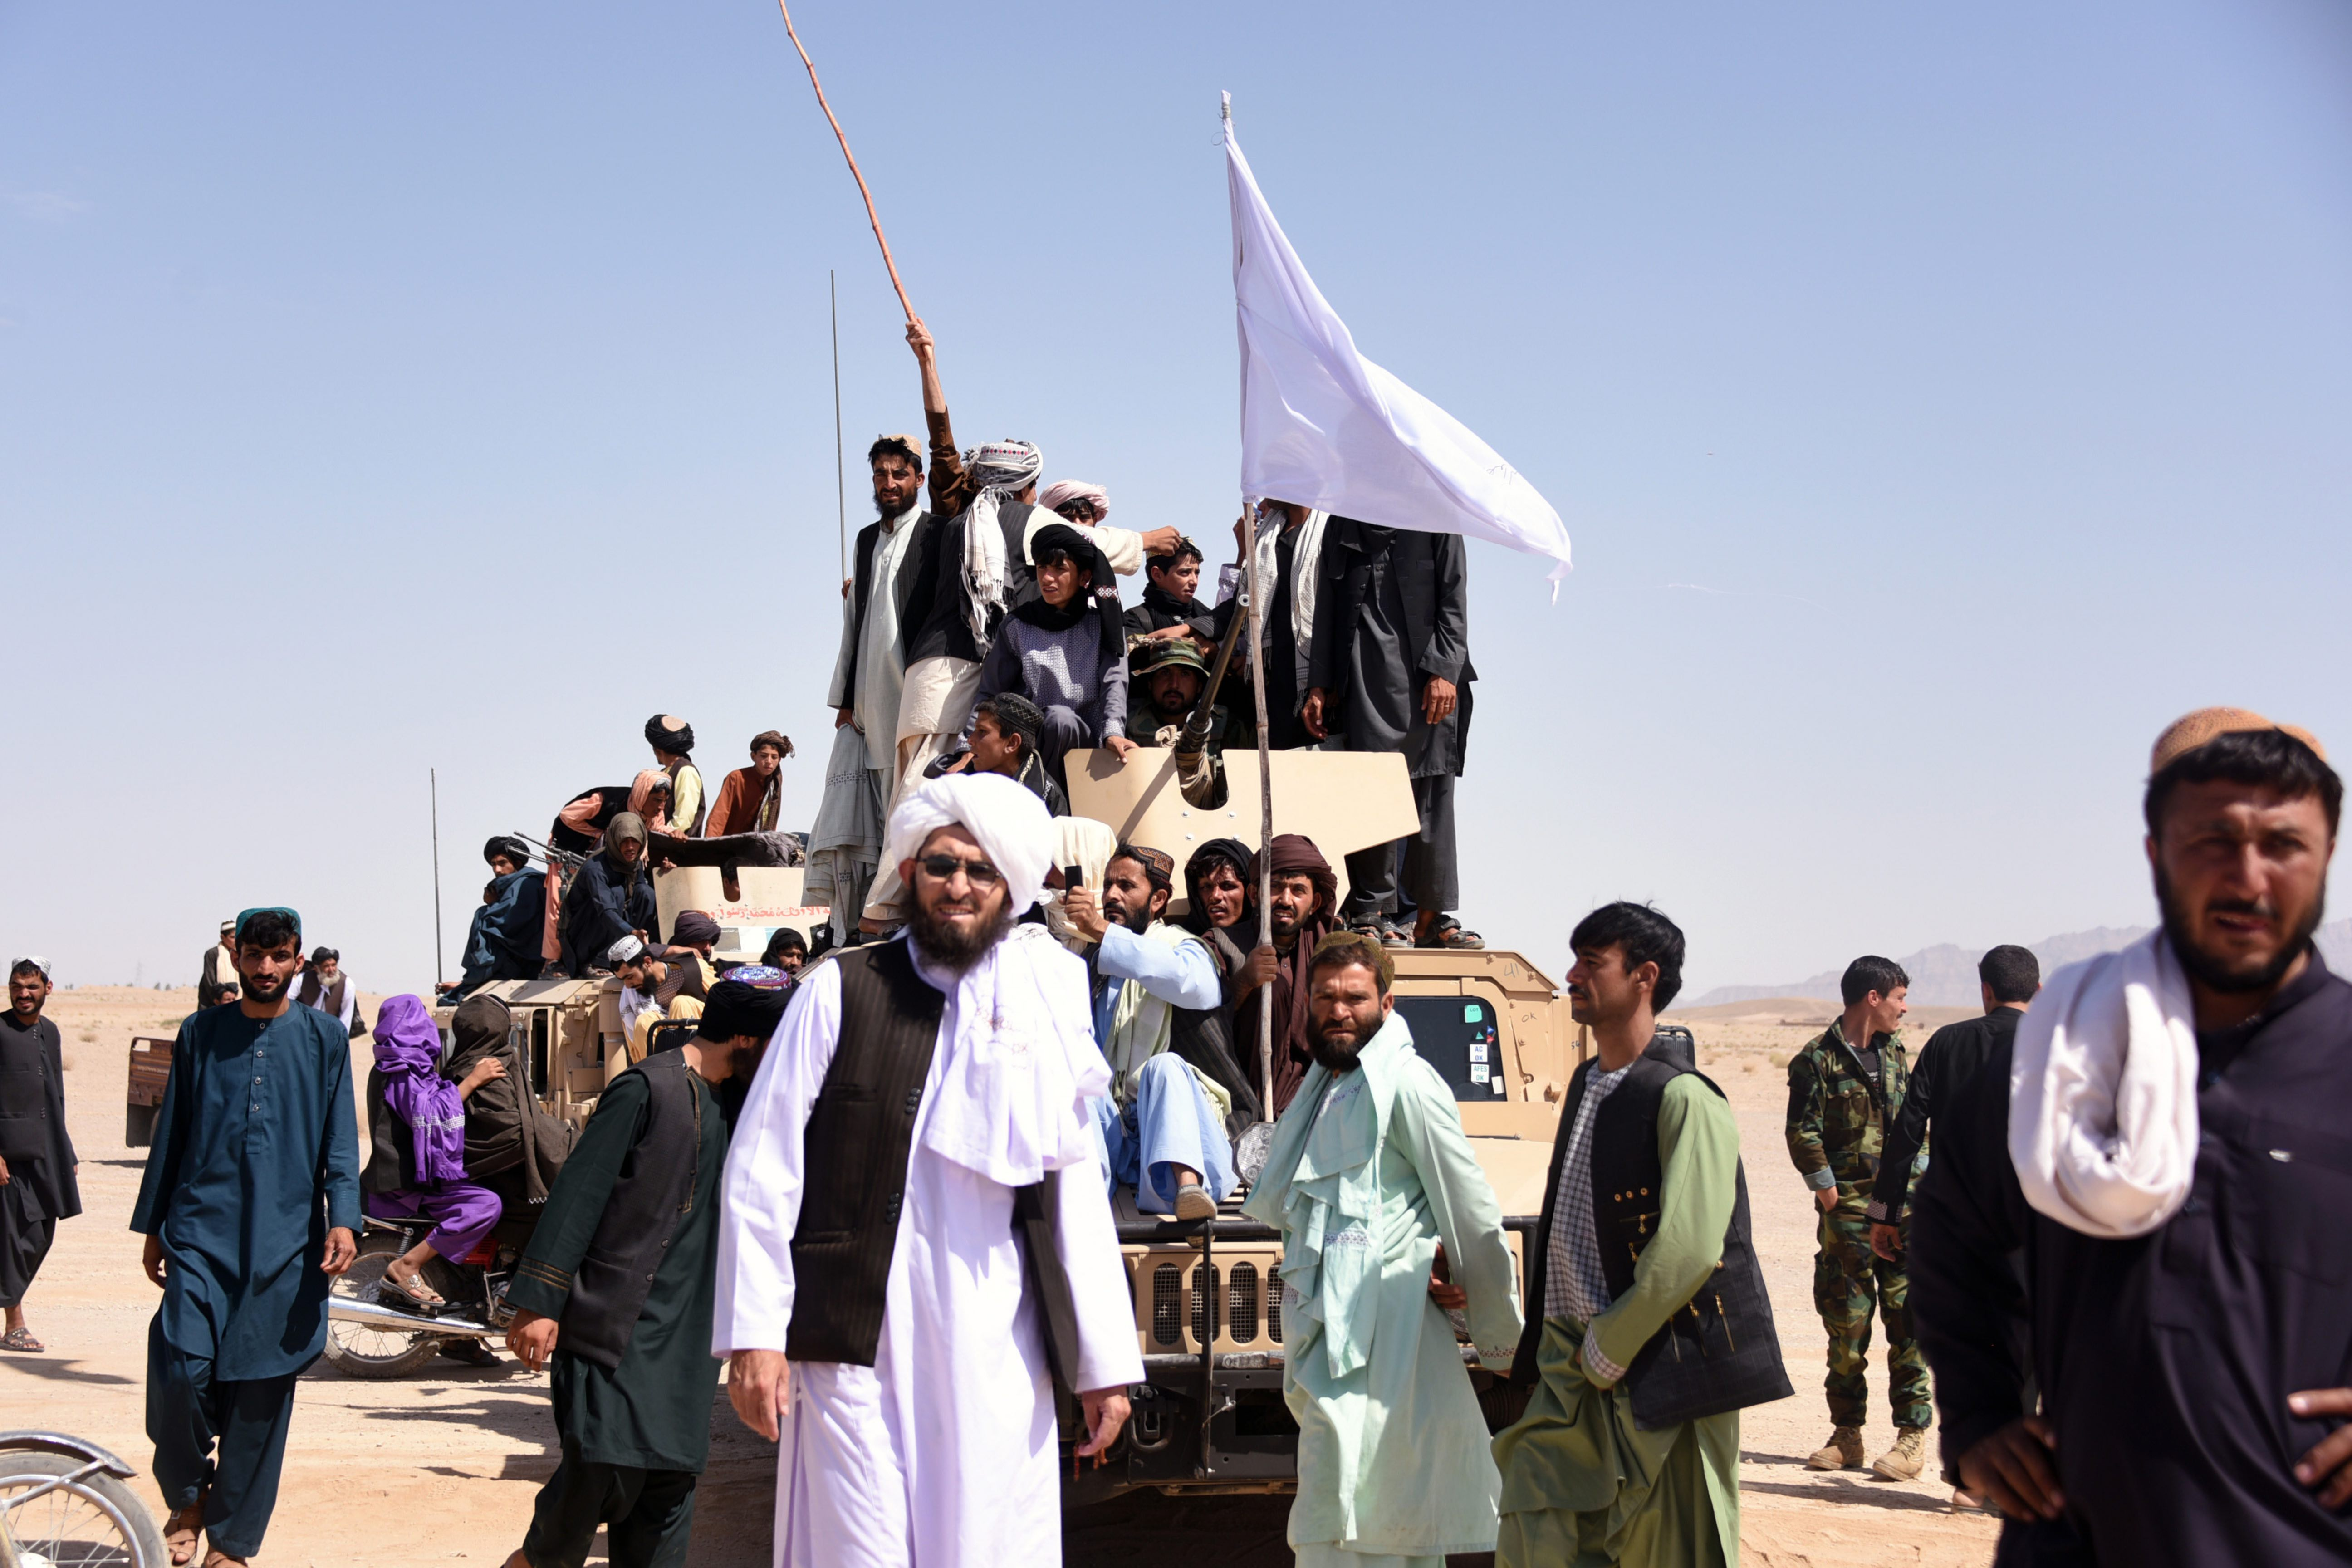 Taliban members and local residents stand on an armoured Humvee vehicle of the Afghan National Army (ANA) as they celebrate ceasefire together on the third day of Eid in Maiwand district of Kandahar province, June 2018. © Javed Tanveer/AFP via Getty Images